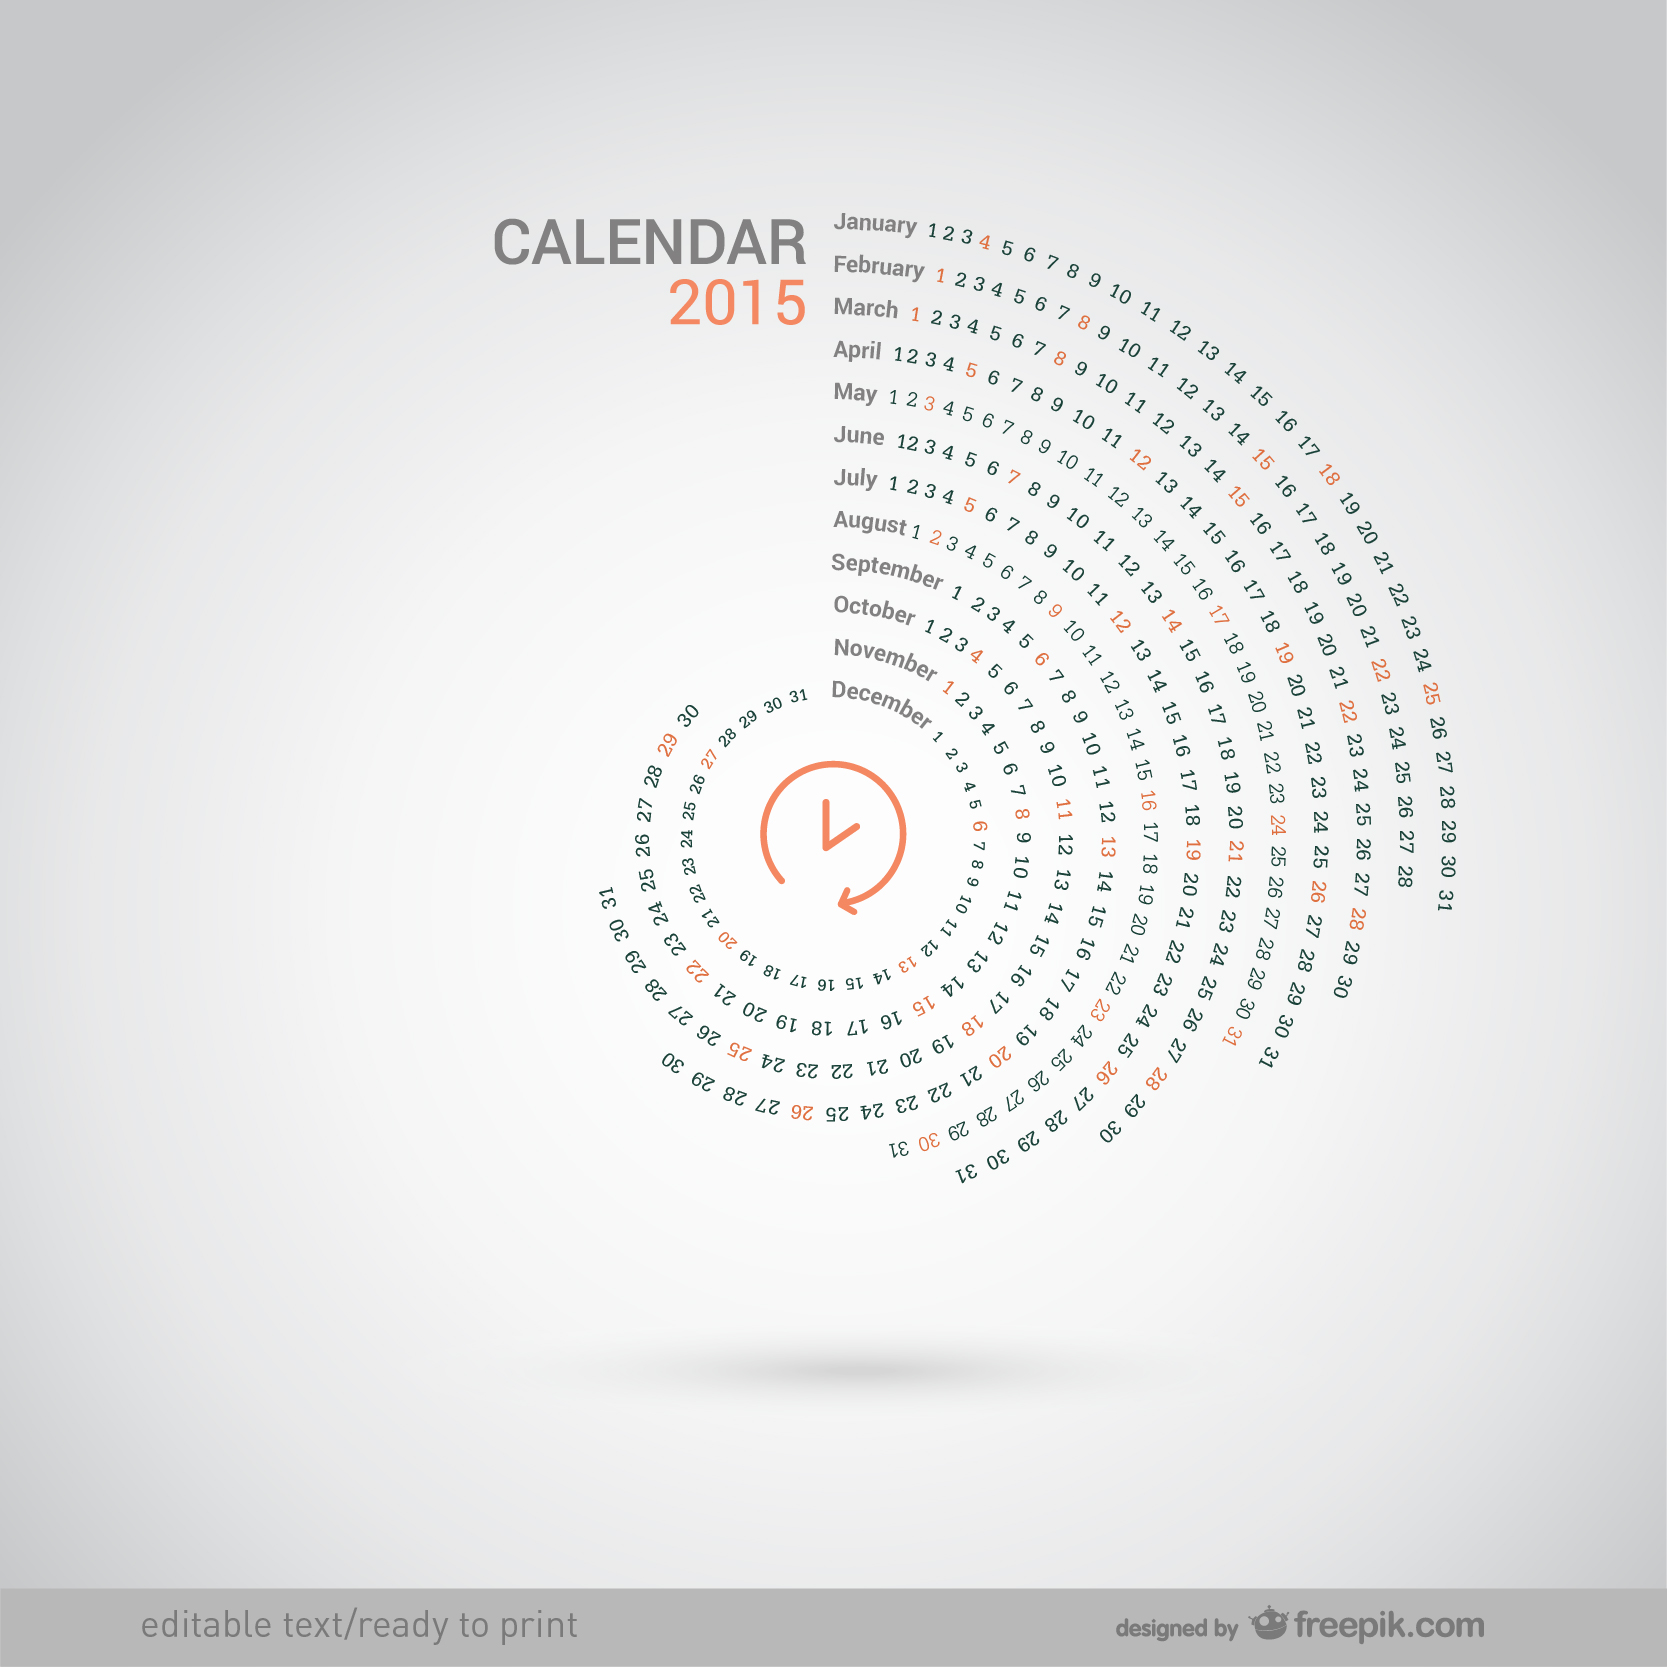 Calendar Vector Art : Free calendar vector art the graphic mac